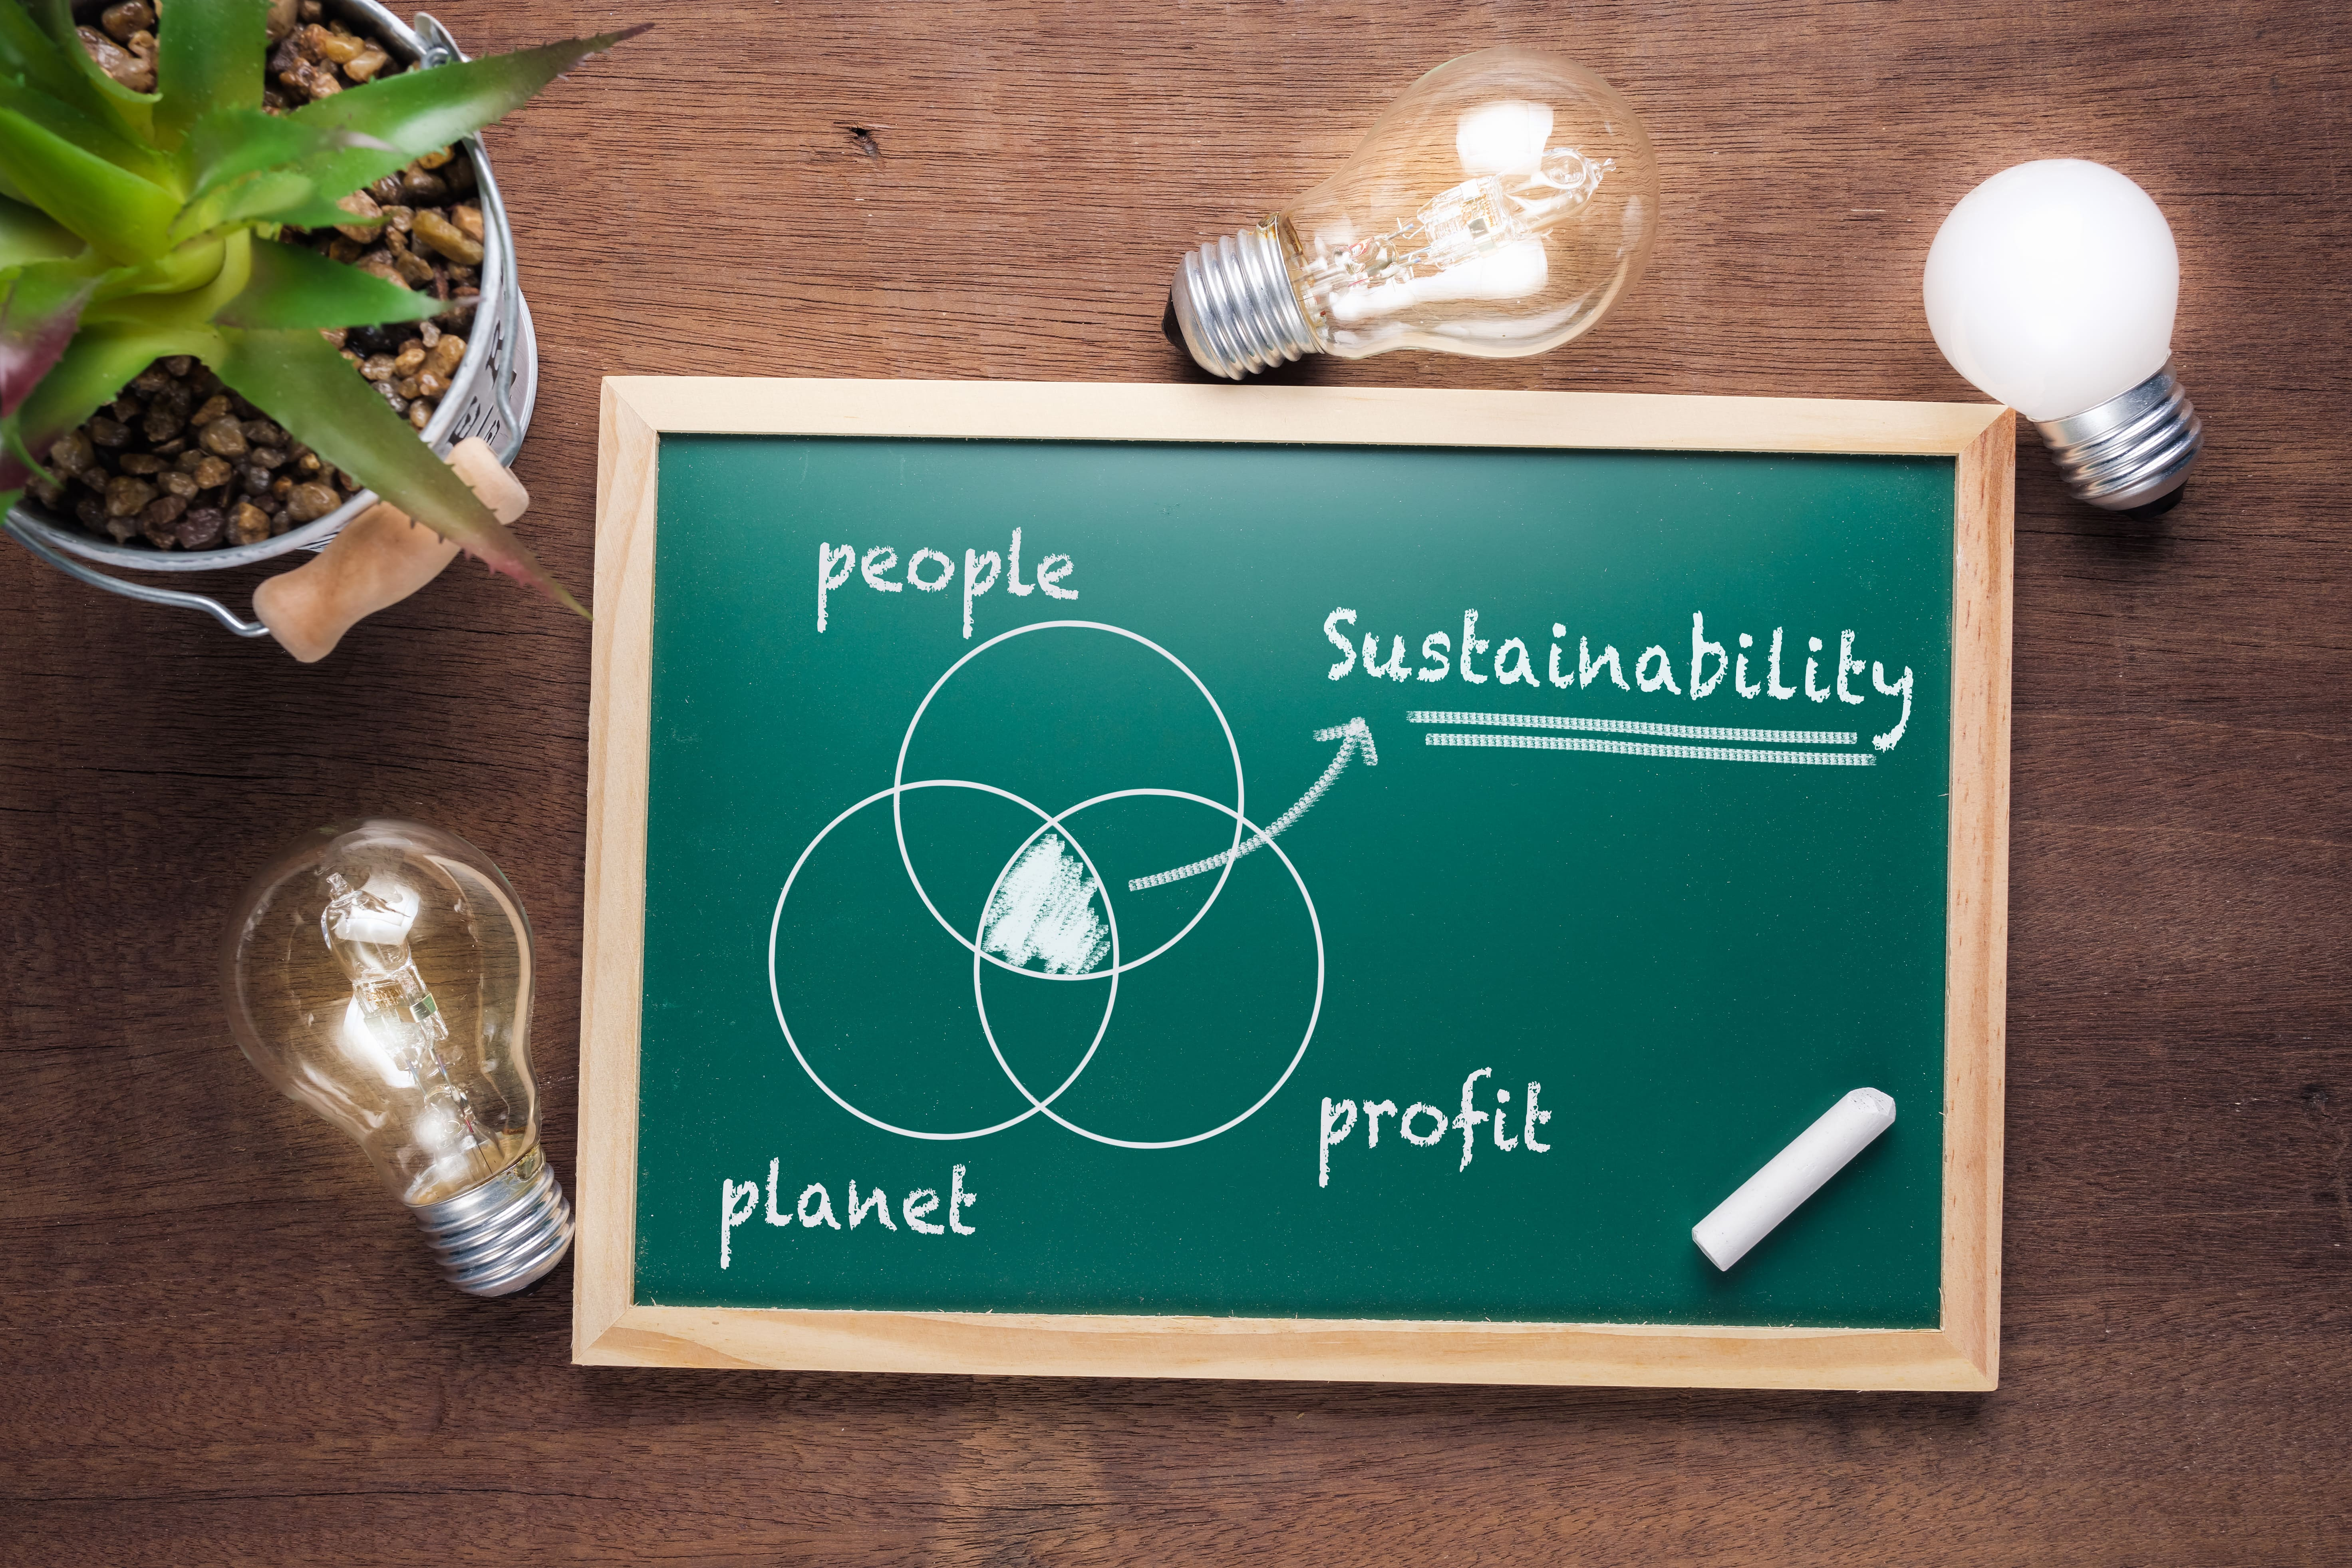 A green chalkboard with a venn diagram on it shows that sustainability is at the intersection of people, planet, and profits - the triple bottom line - the chalkboard is on a wooden desk with three lit lightbulbs and a succulent plant around it.